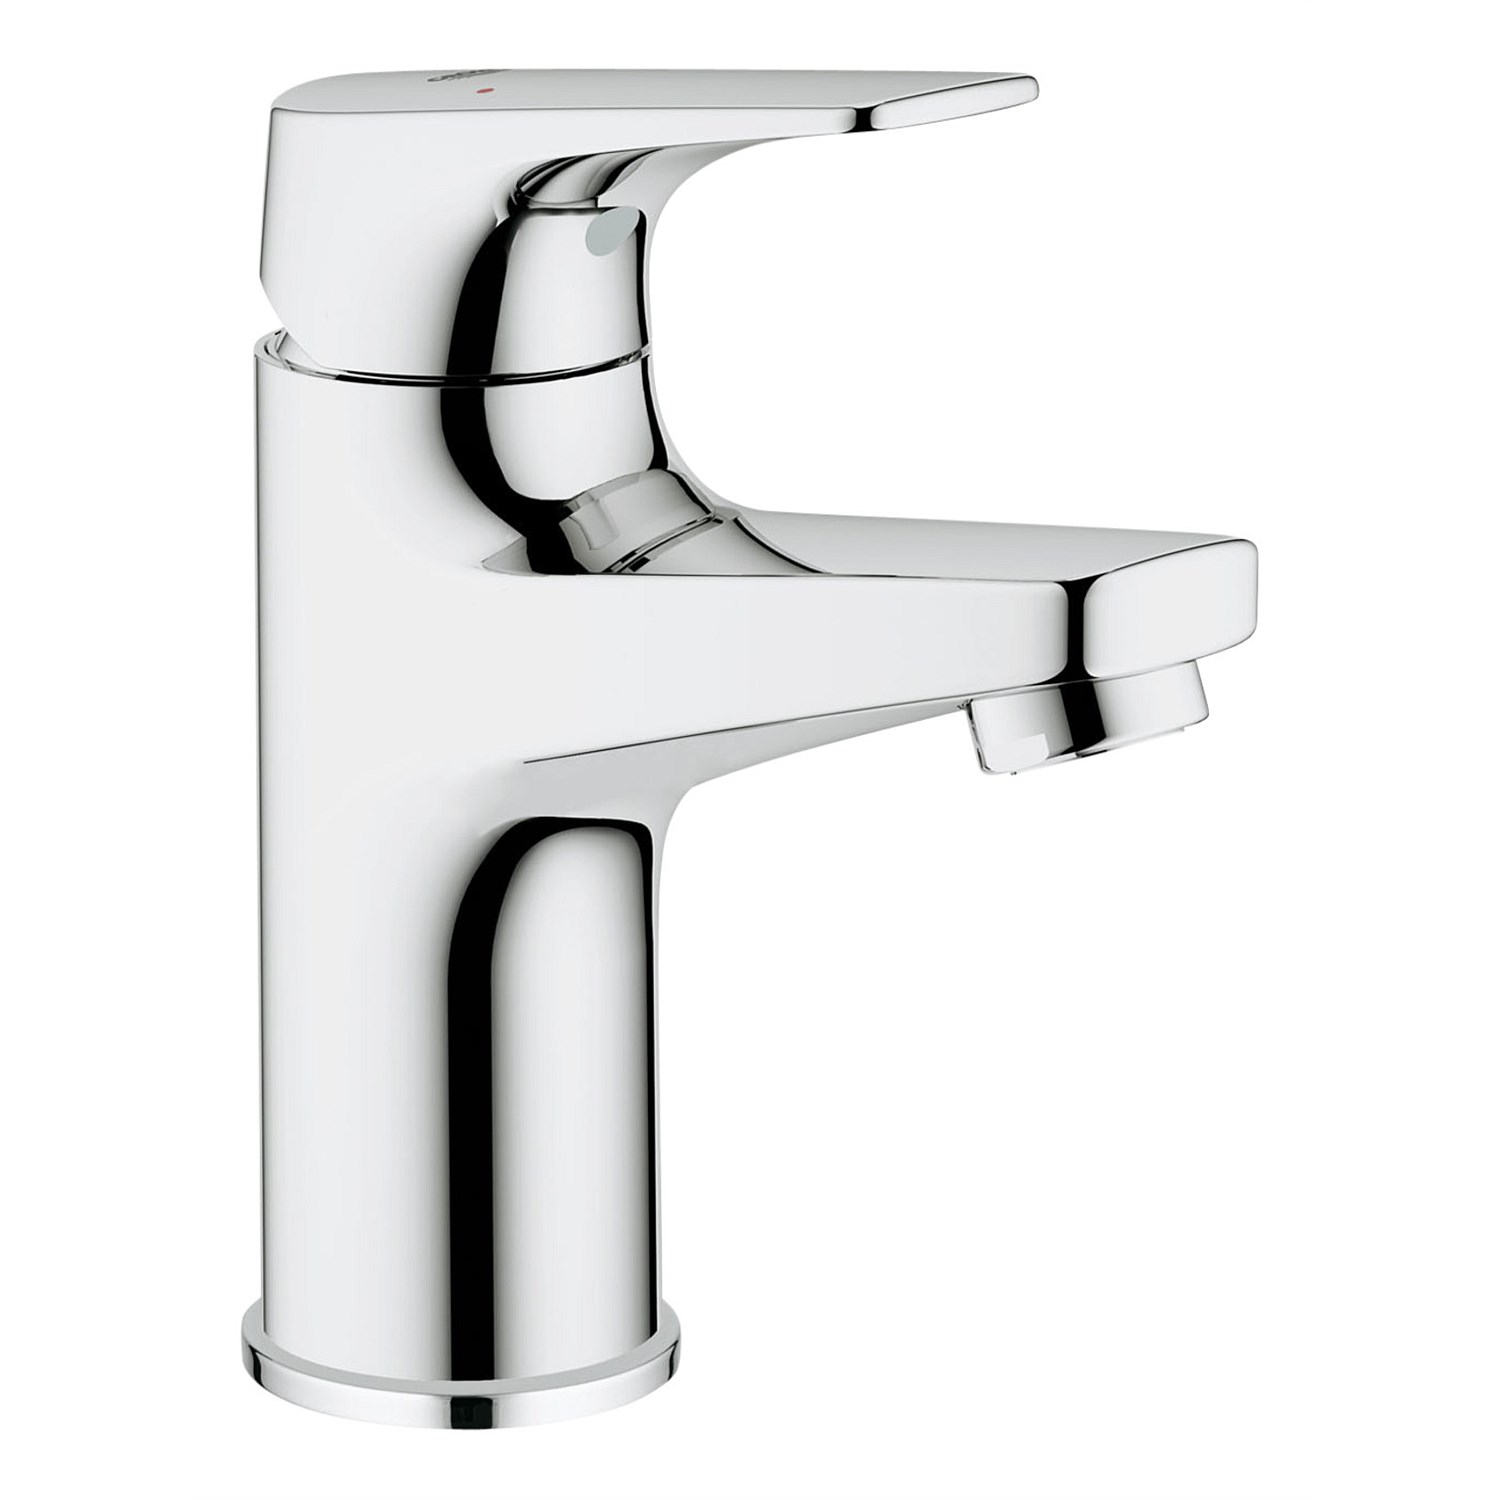 Bathroom Tapware | Shop Online | Plumbing World - Grohe Bauflow ...